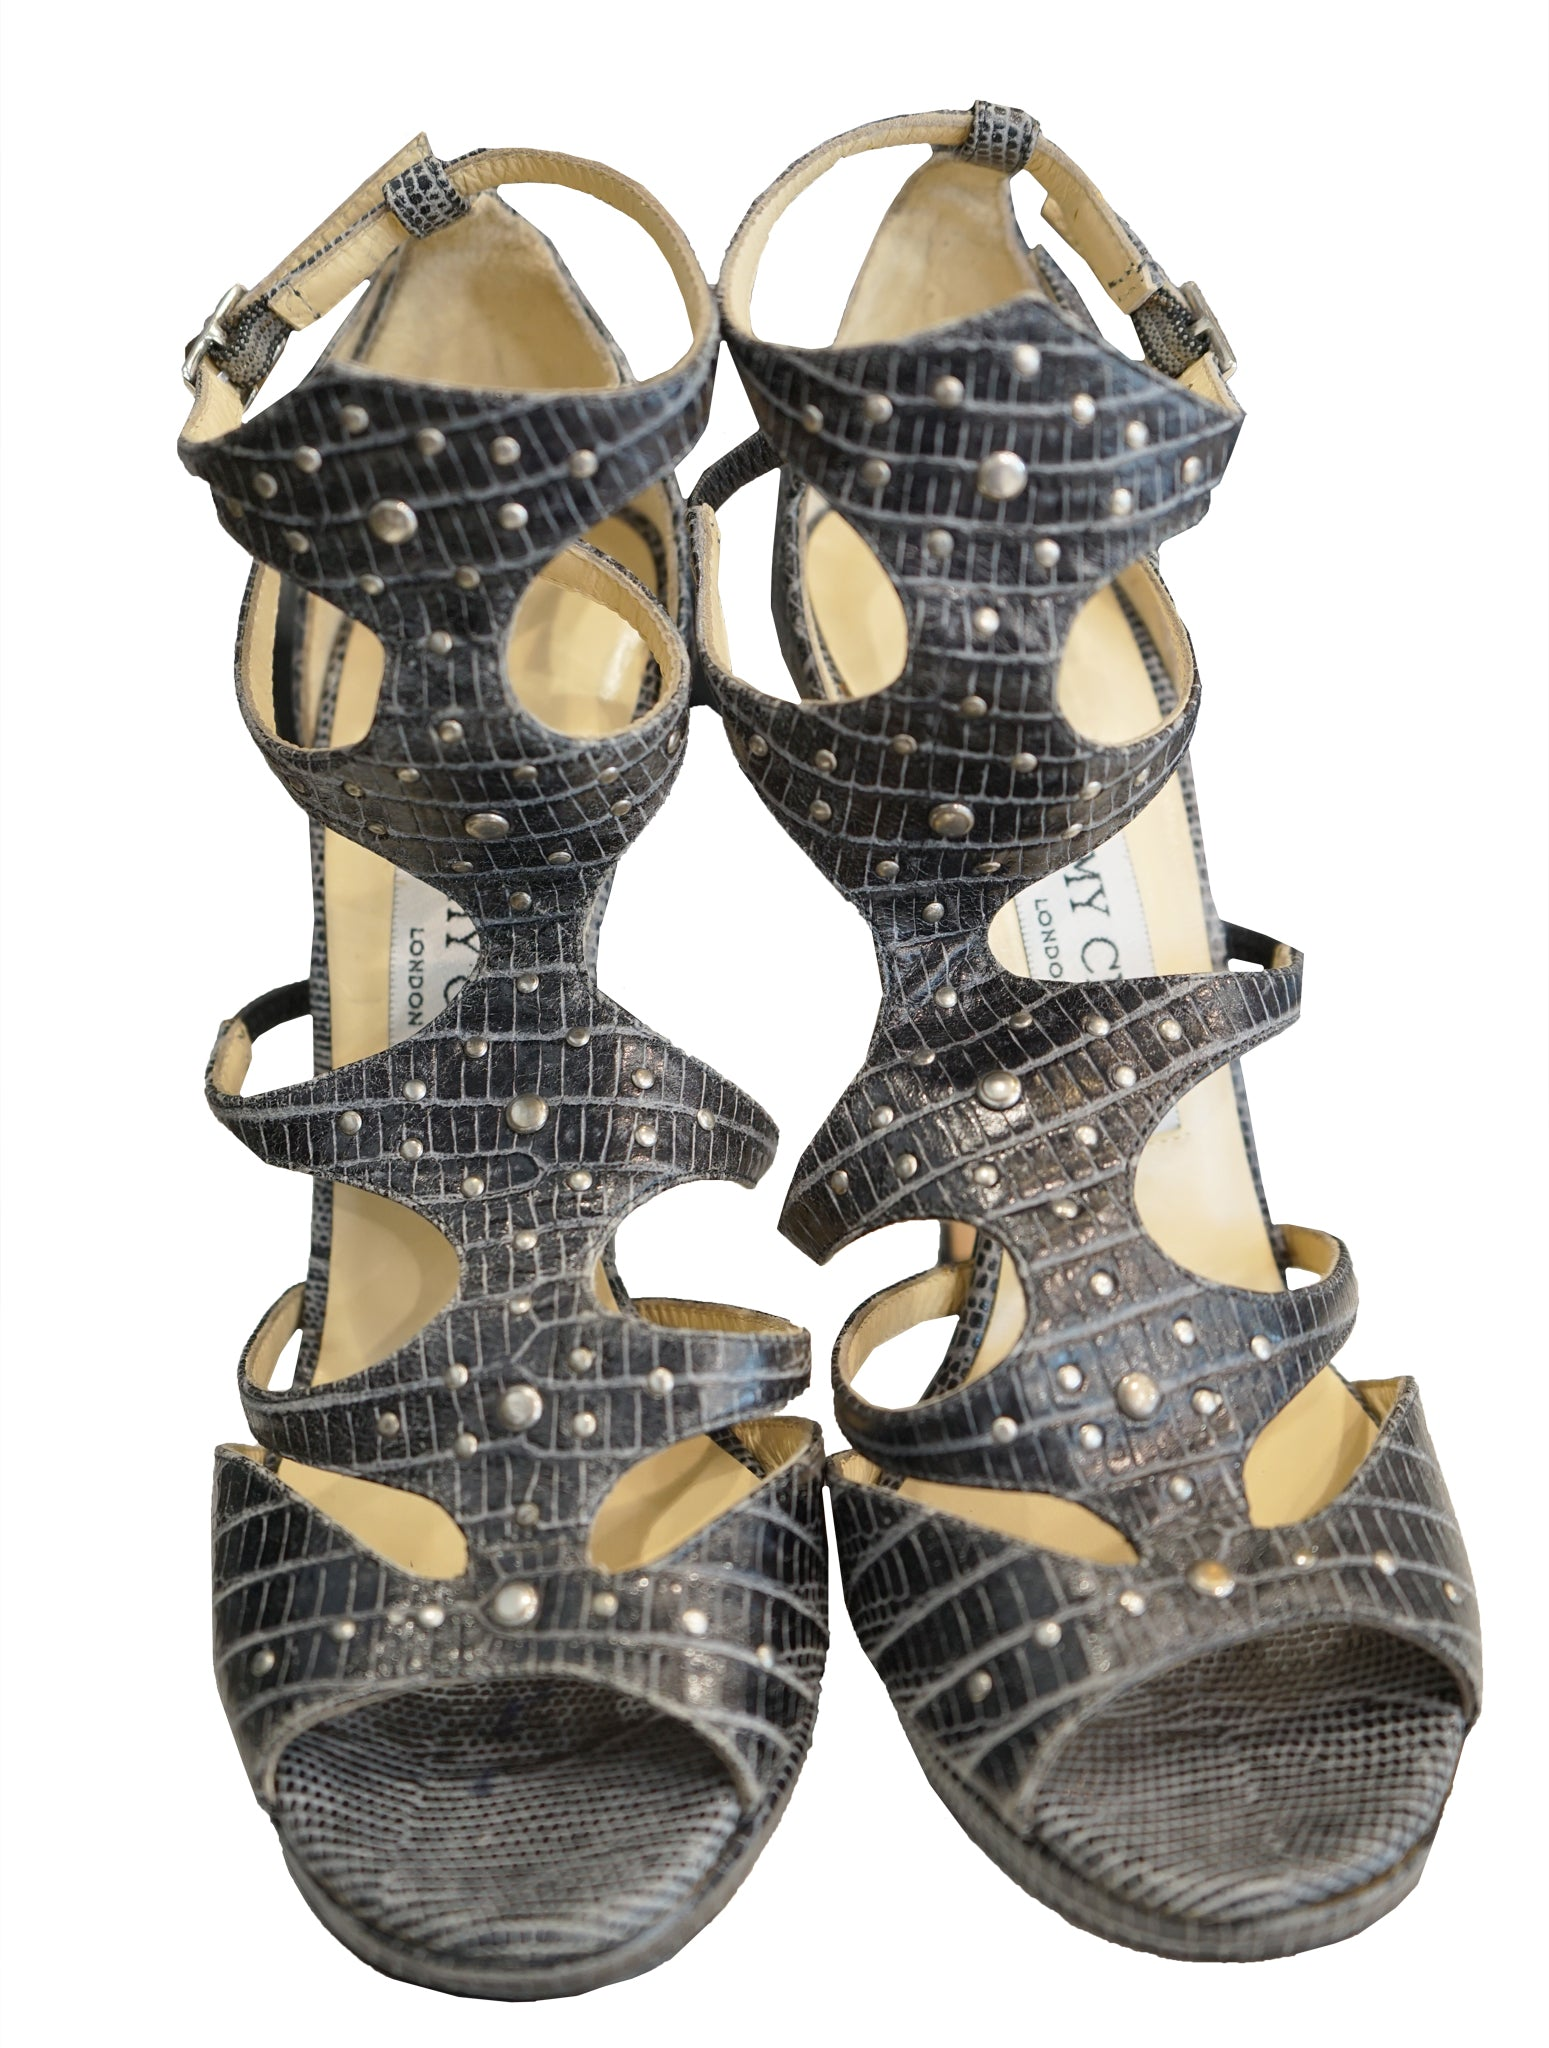 MOSTYN LIZARD EMBOSSED STUDDED SANDALS